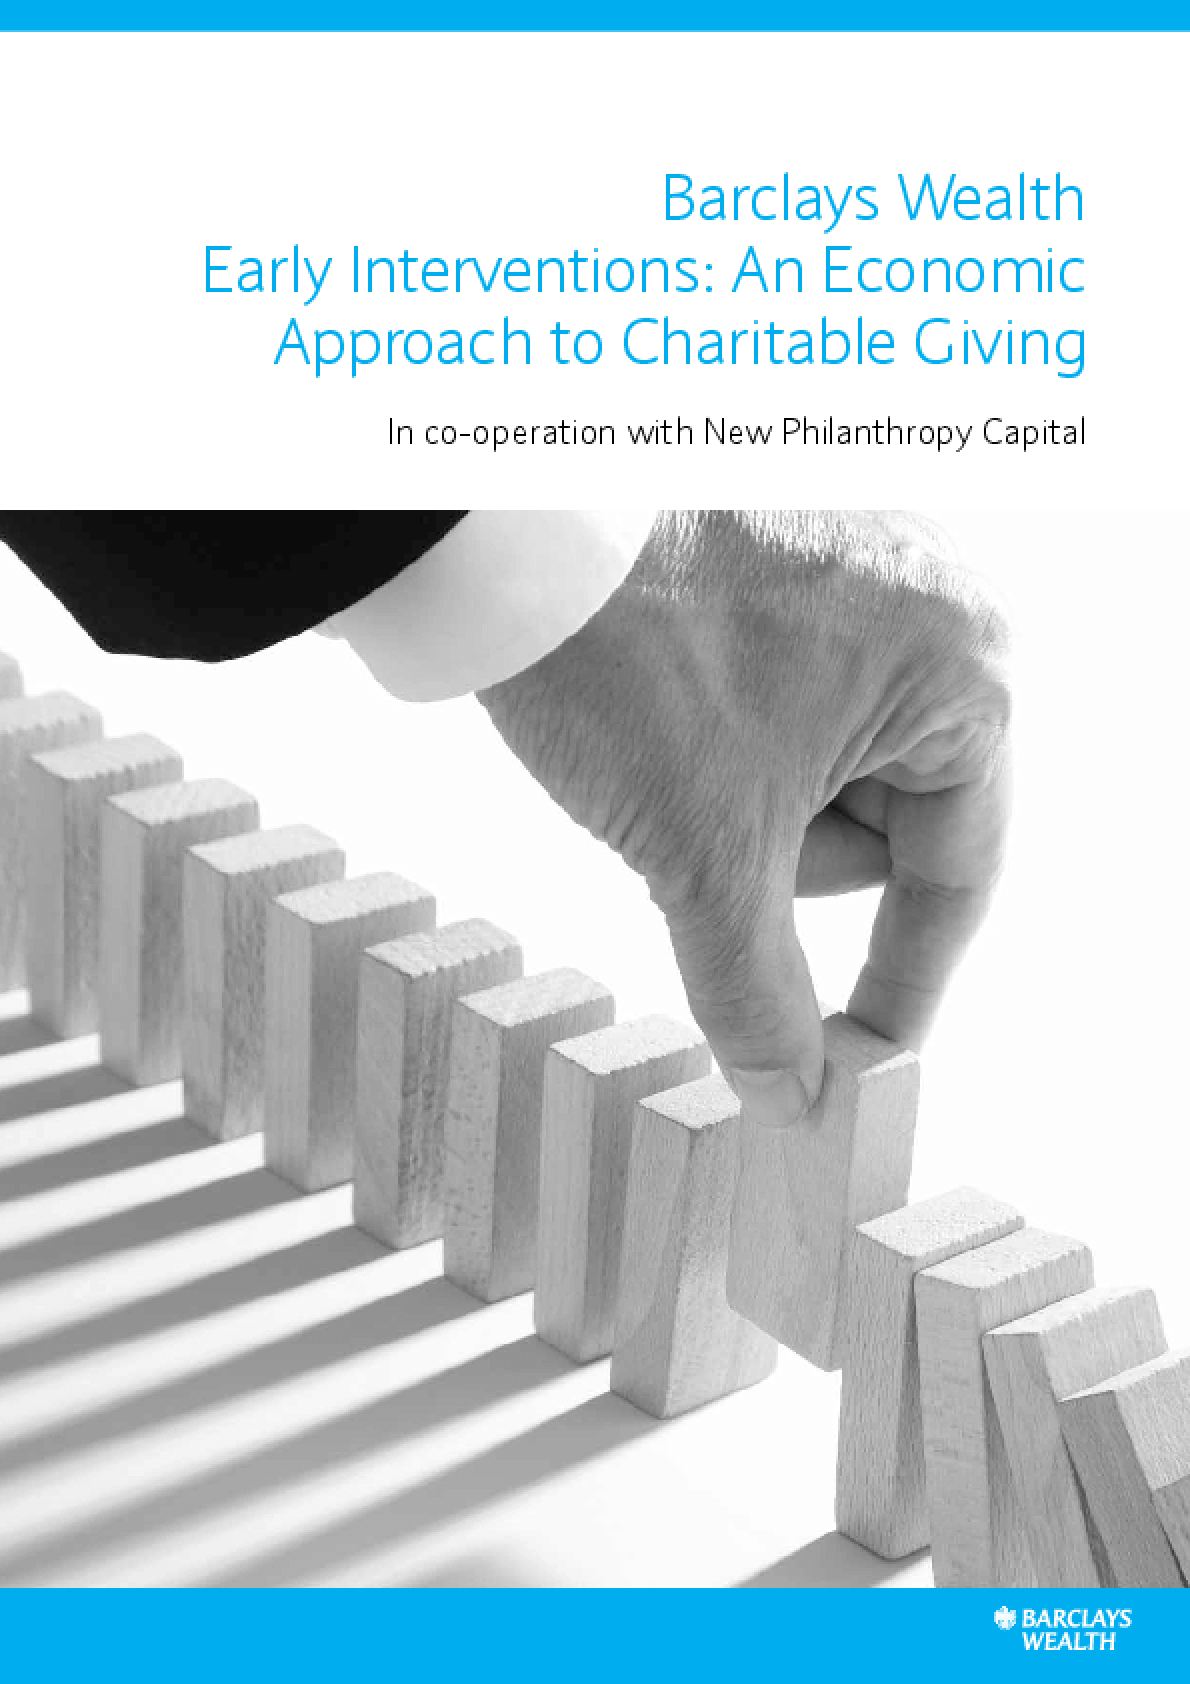 Early Interventions: An Economic Approach to Charitable Giving